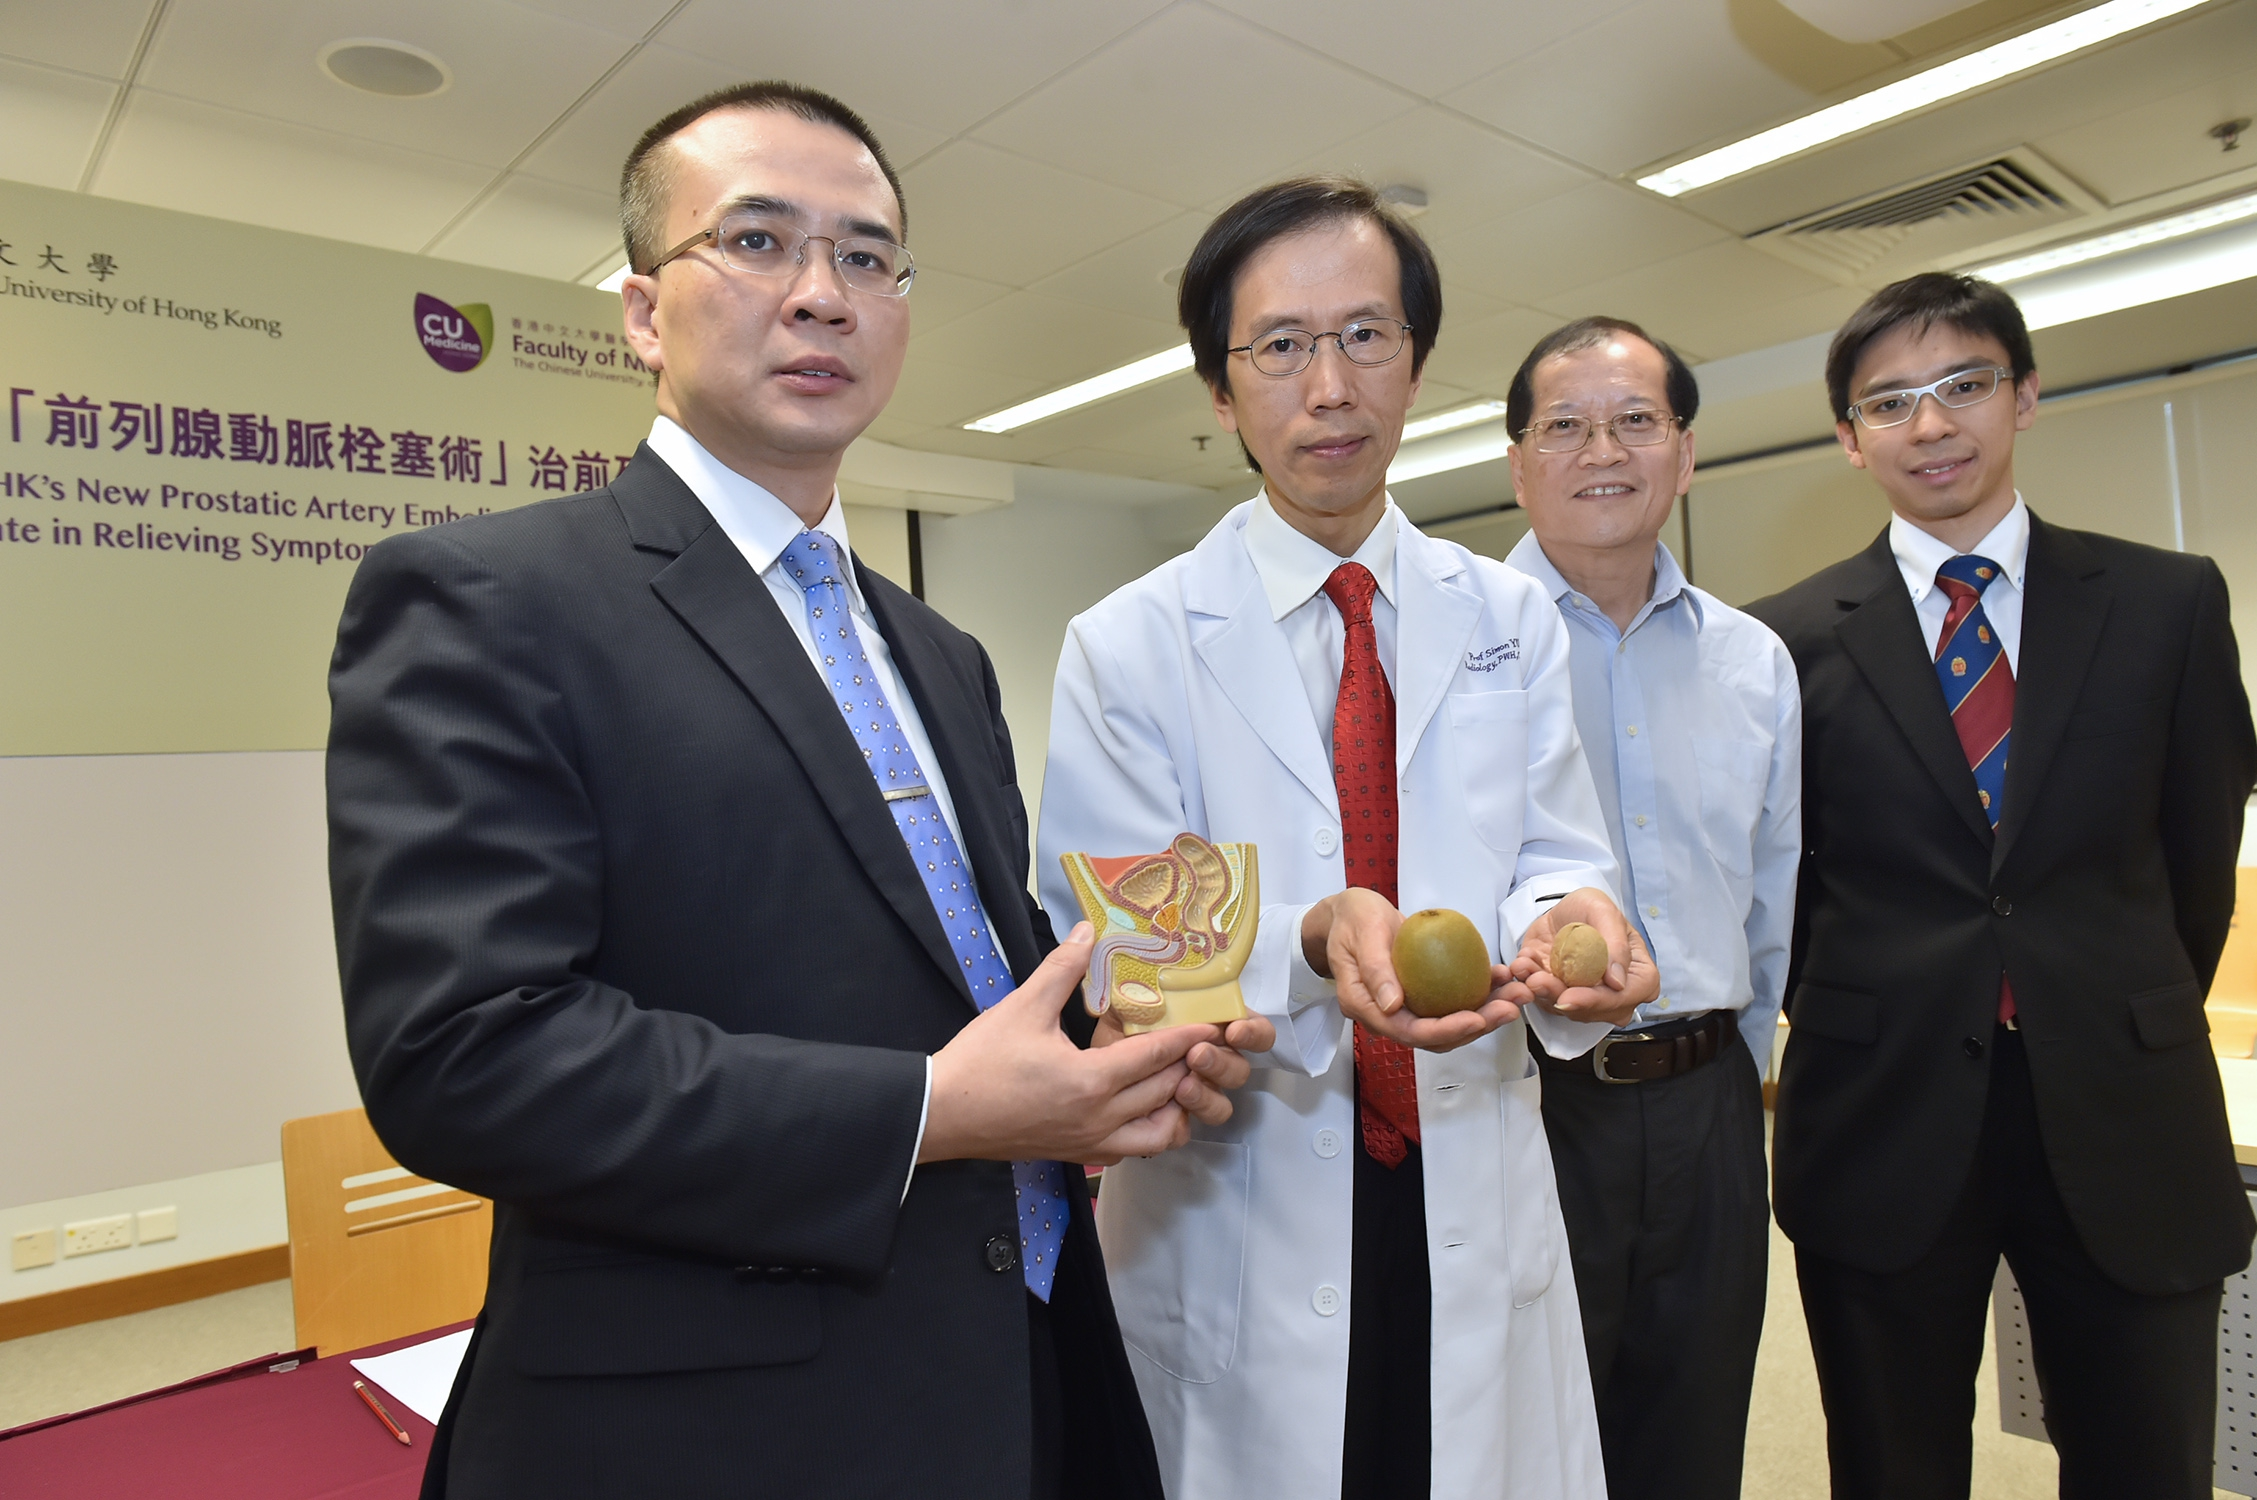 Prof. Simon Chun Ho YU (2nd left), Chairman, Department of Imaging and Interventional Radiology, and Director, Vascular and Interventional Radiology Foundation Clinical Science Center; and his team members in the PAE research, Prof. Anthony Chi Fai NG (1st left), Director of S.H. HO Urology Centre; and Dr. Peter Ka Fung CHIU (1st right), Clinical Assistant Professor (honorary), Division of Urology, Department of Surgery, CUHK.